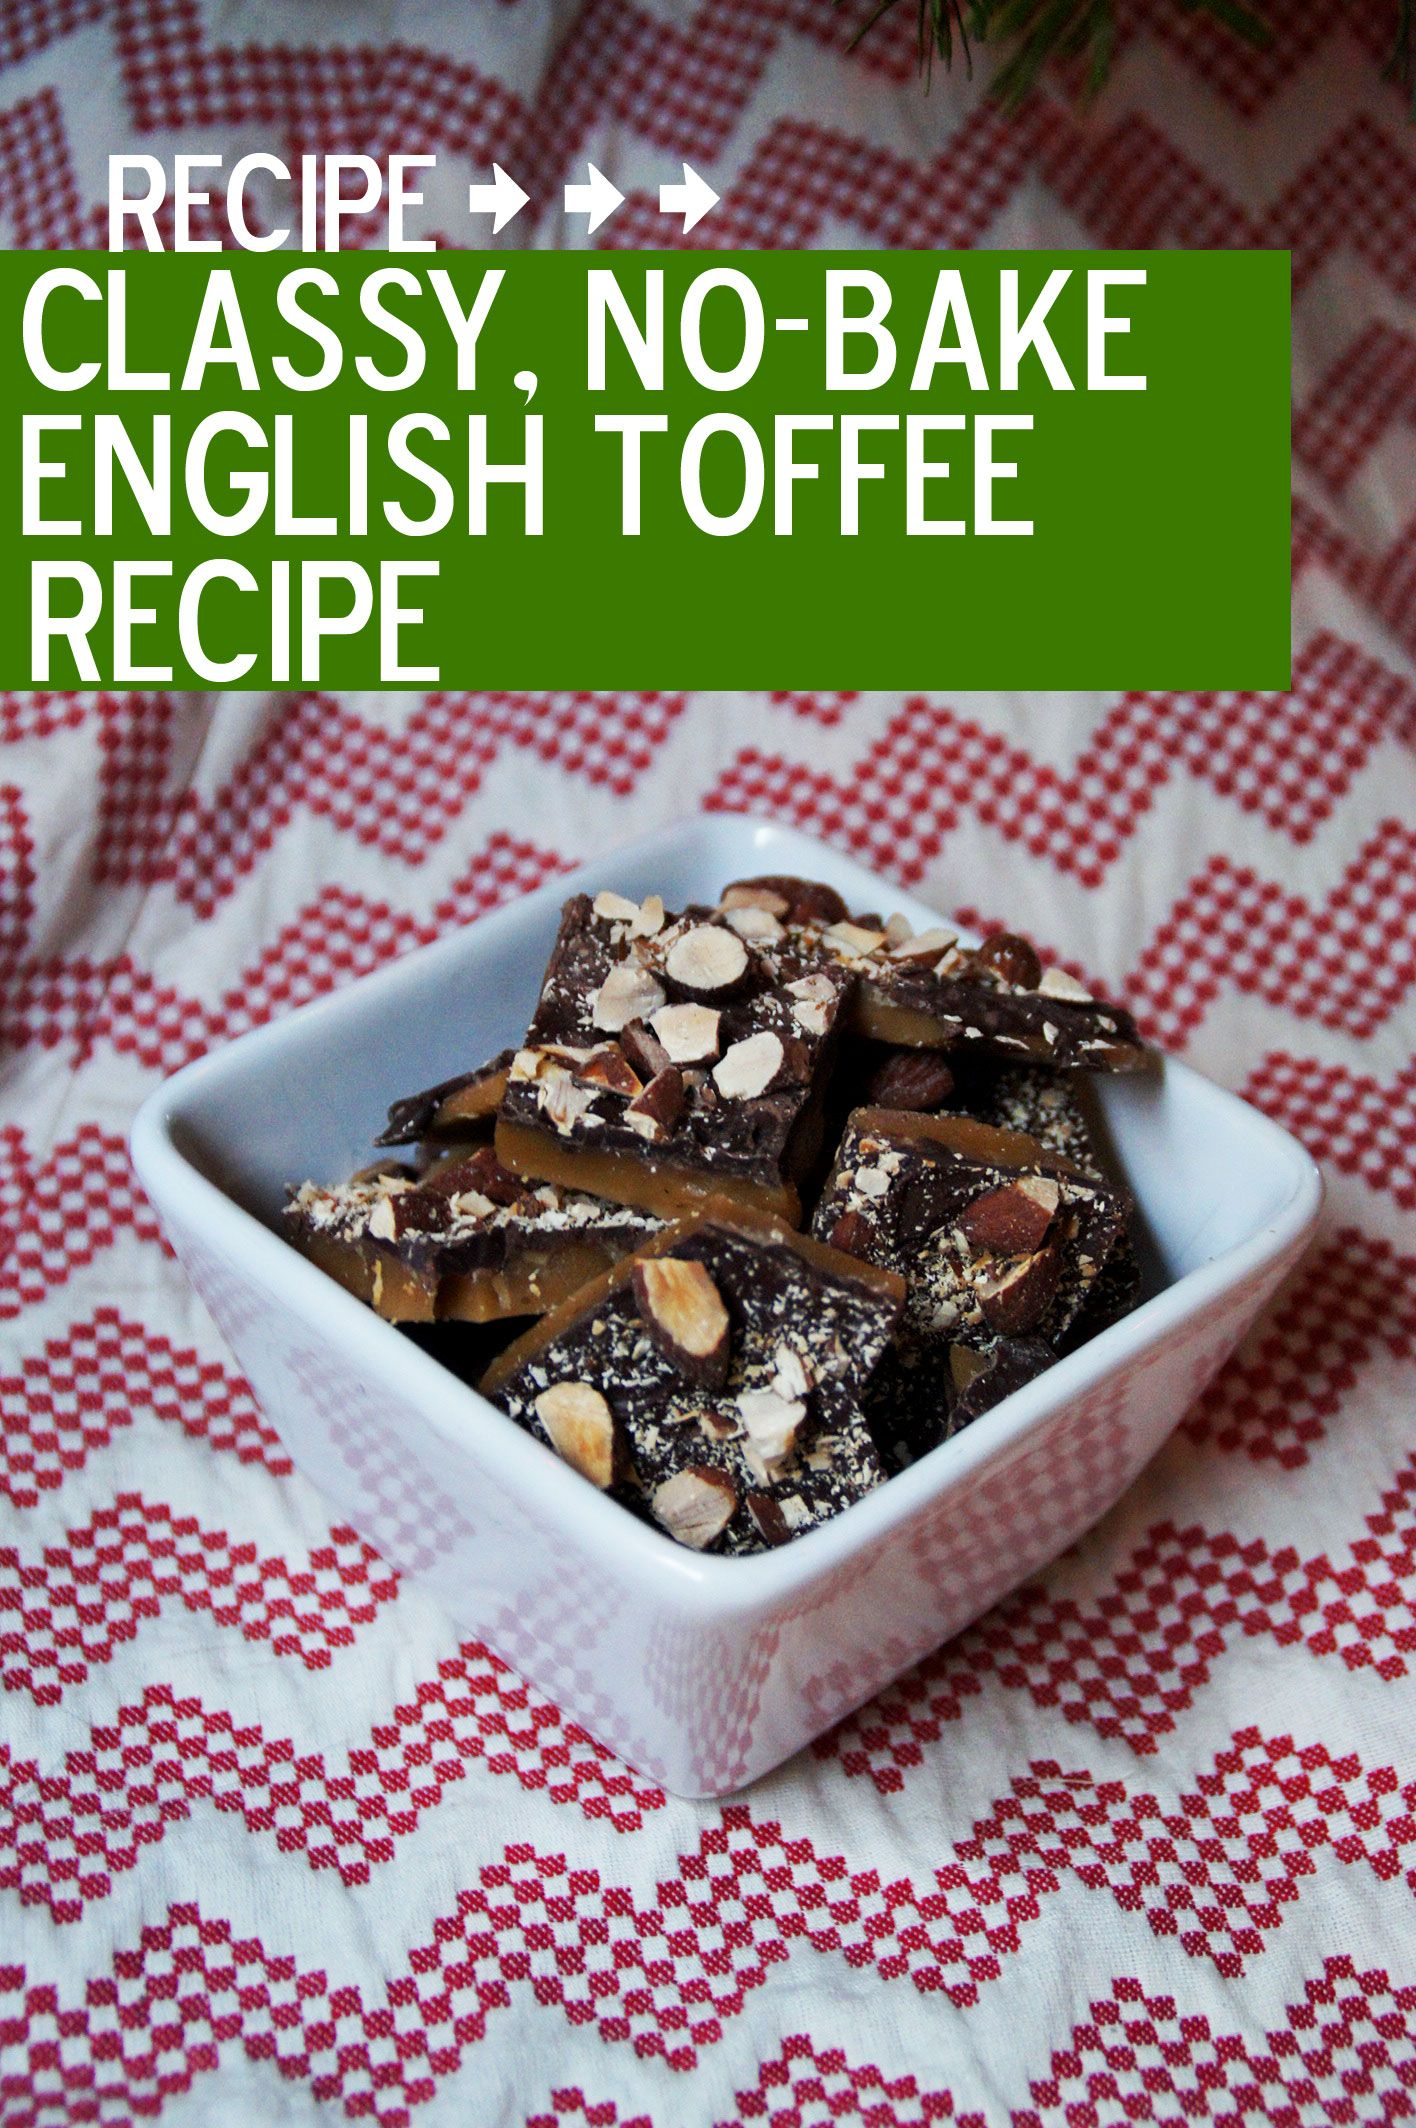 The best homemade gift: Classic English Toffee #recipe